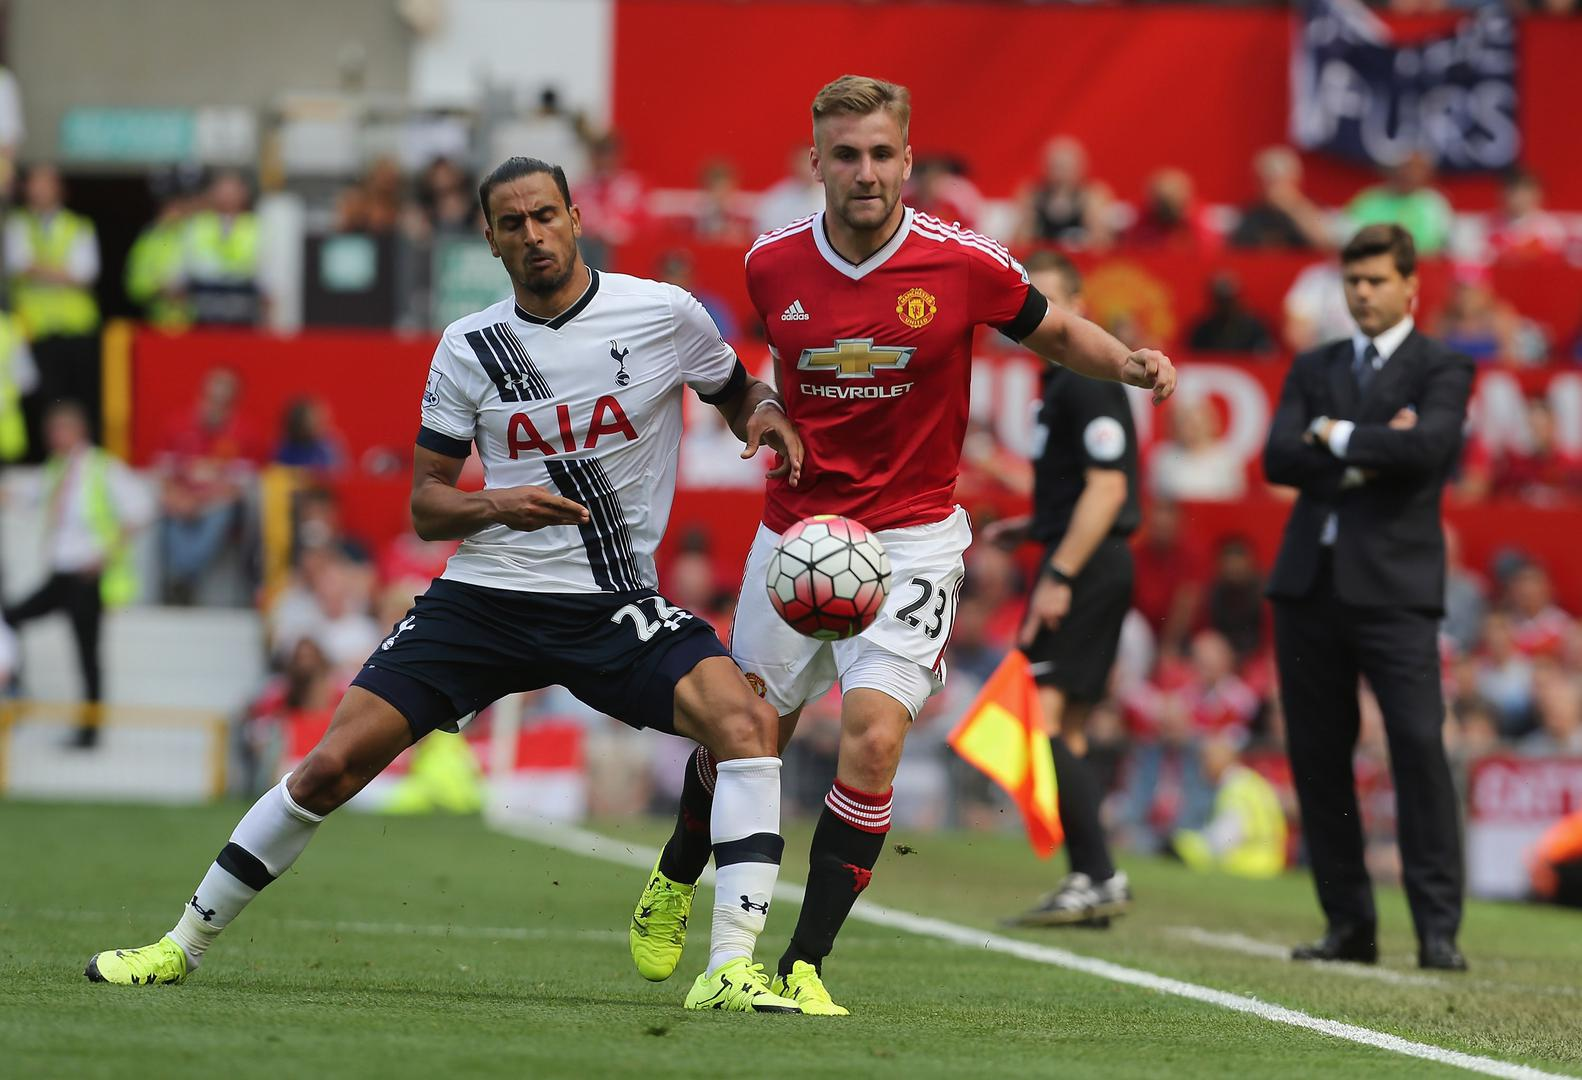 Luke Shaw and Nacer Chadli compete for the ball during Manchester United's opening-day fixture against Tottenham Hotspur in 2015.